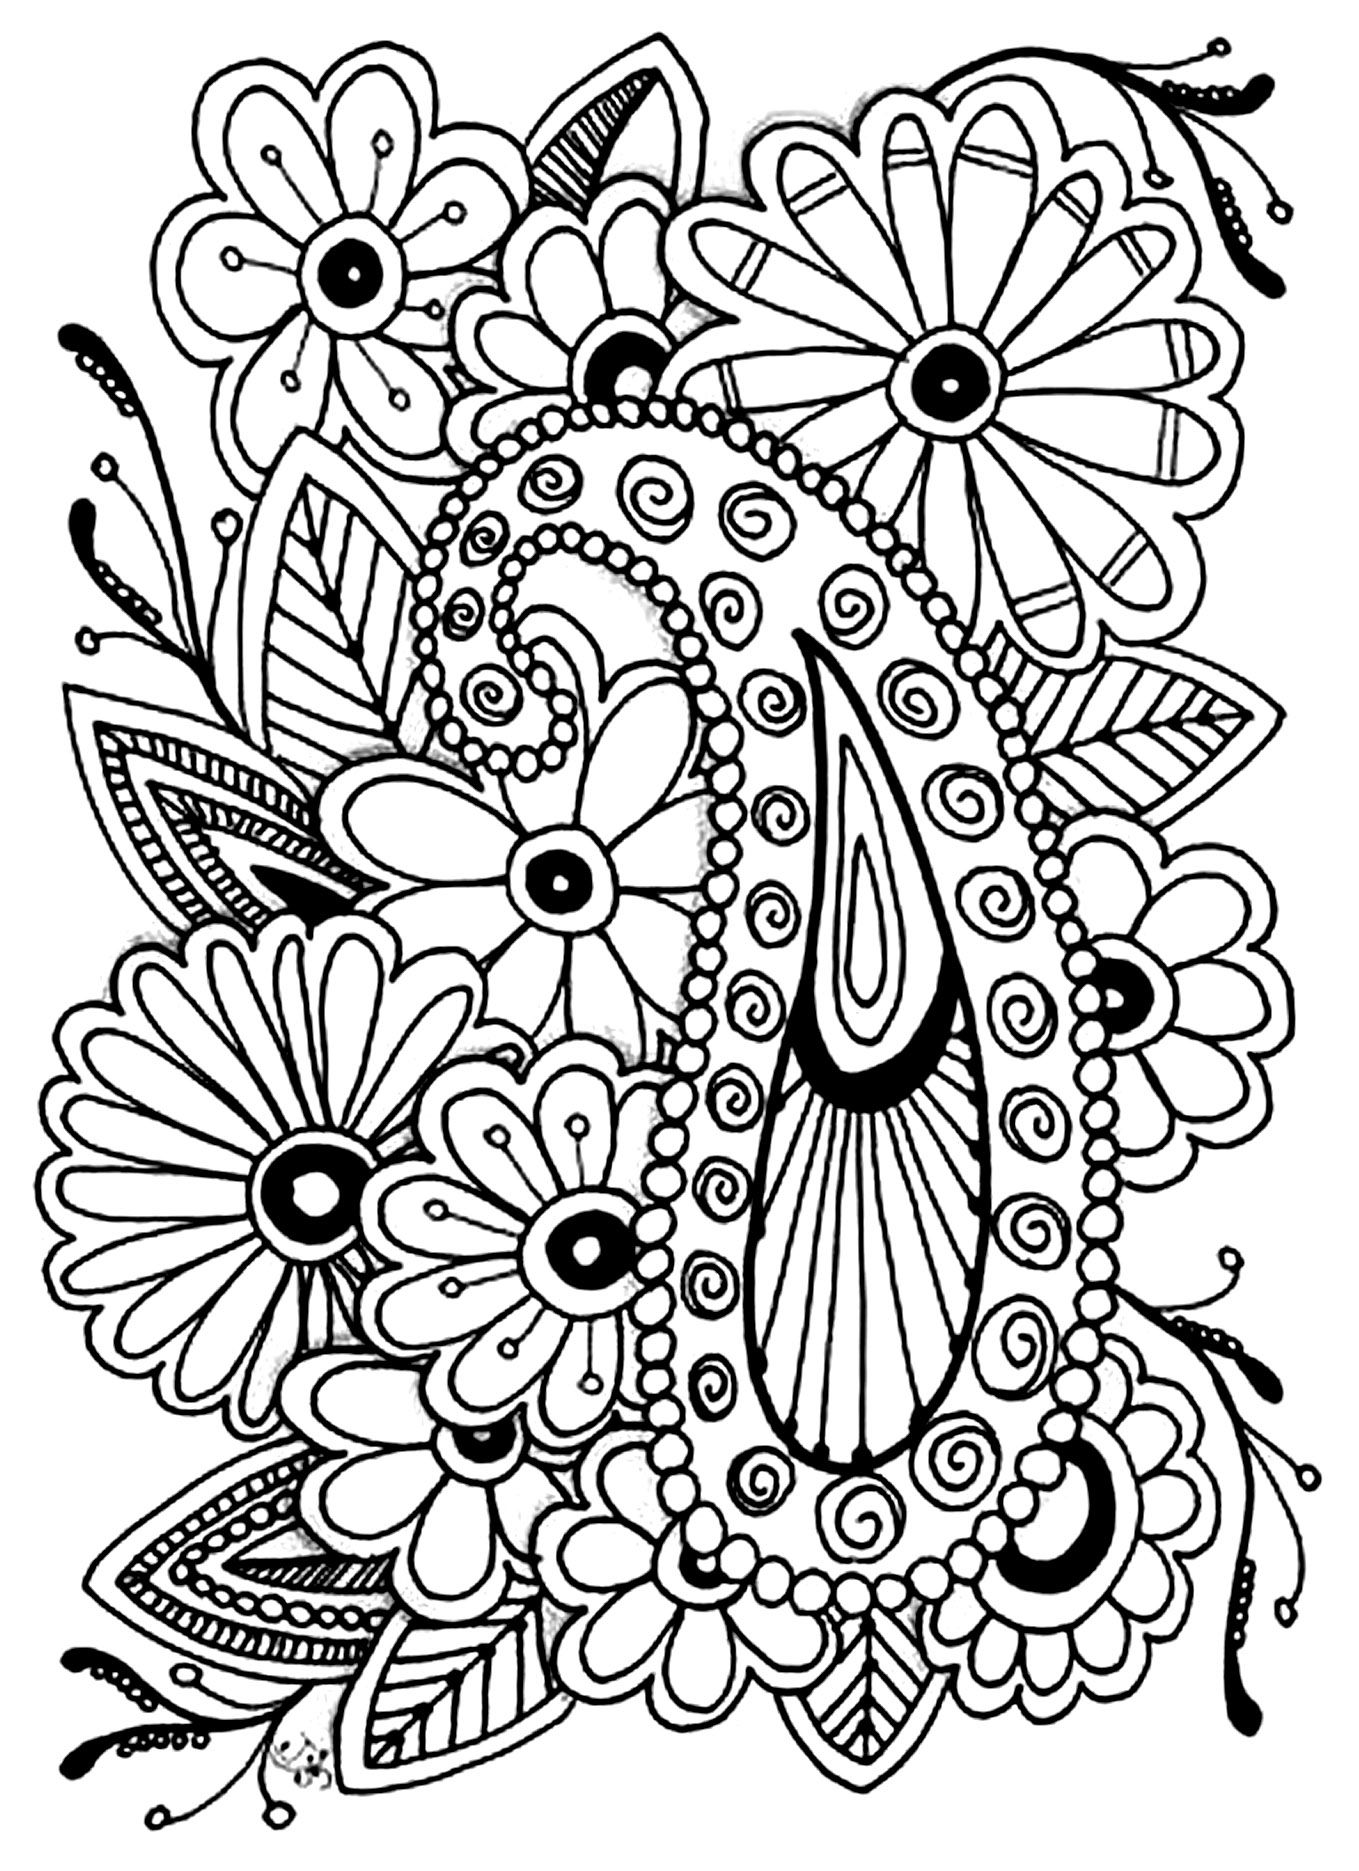 36++ Flower coloring pages printable ideas in 2021